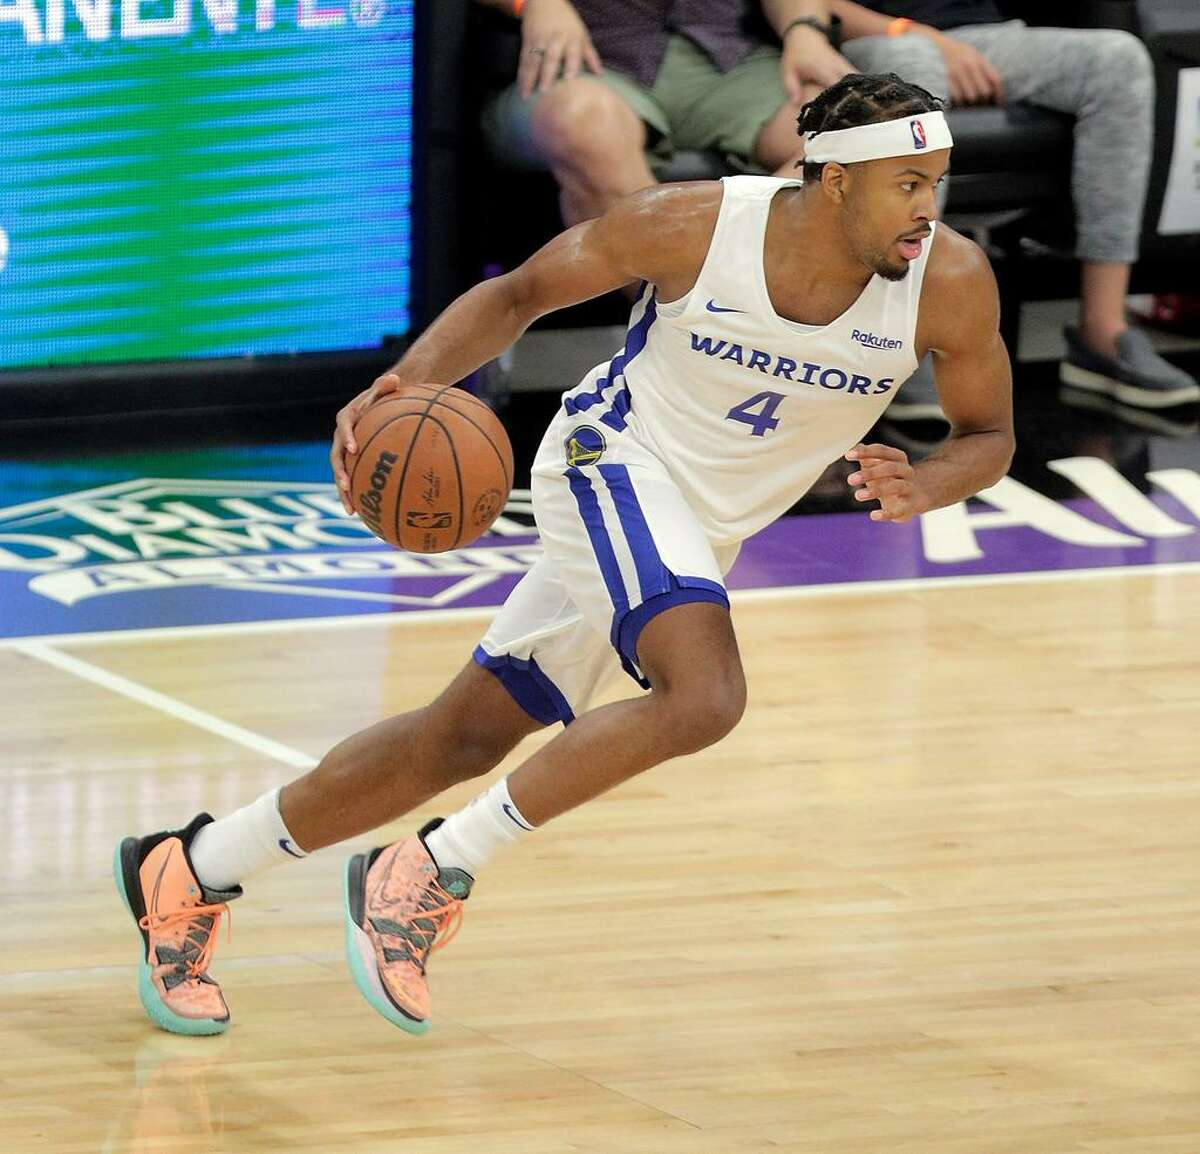 Moses Moody (4) dribbles to the basket in the first half as the Golden State Warriors summer league played the Miami Heat Summer league in the 2021 California Classic at Golden 1 Center in Sacramento, Calif., on Wednesday, August 4, 2021.